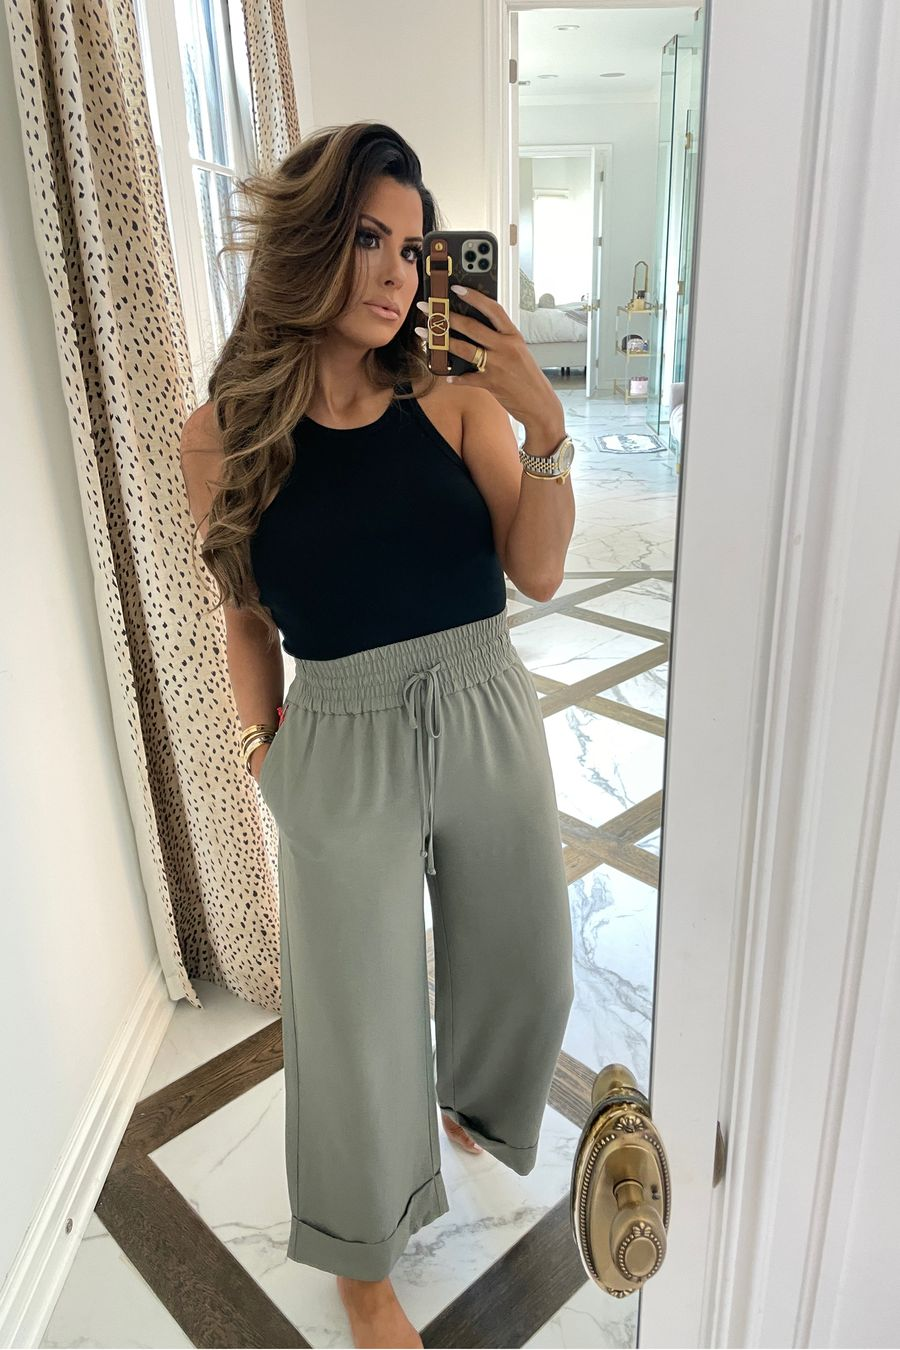 casual outfit ideas, best tank top summer 2021, tank tops under $30, best pants for warm weather, Emily ann gemma, casual outfit ideas summer 2021 | June Instagram Recap by popular US fashion blog, The Sweetest Thing: image of Emily Gemma wearing a black tank and grey wide leg drawstring pants.